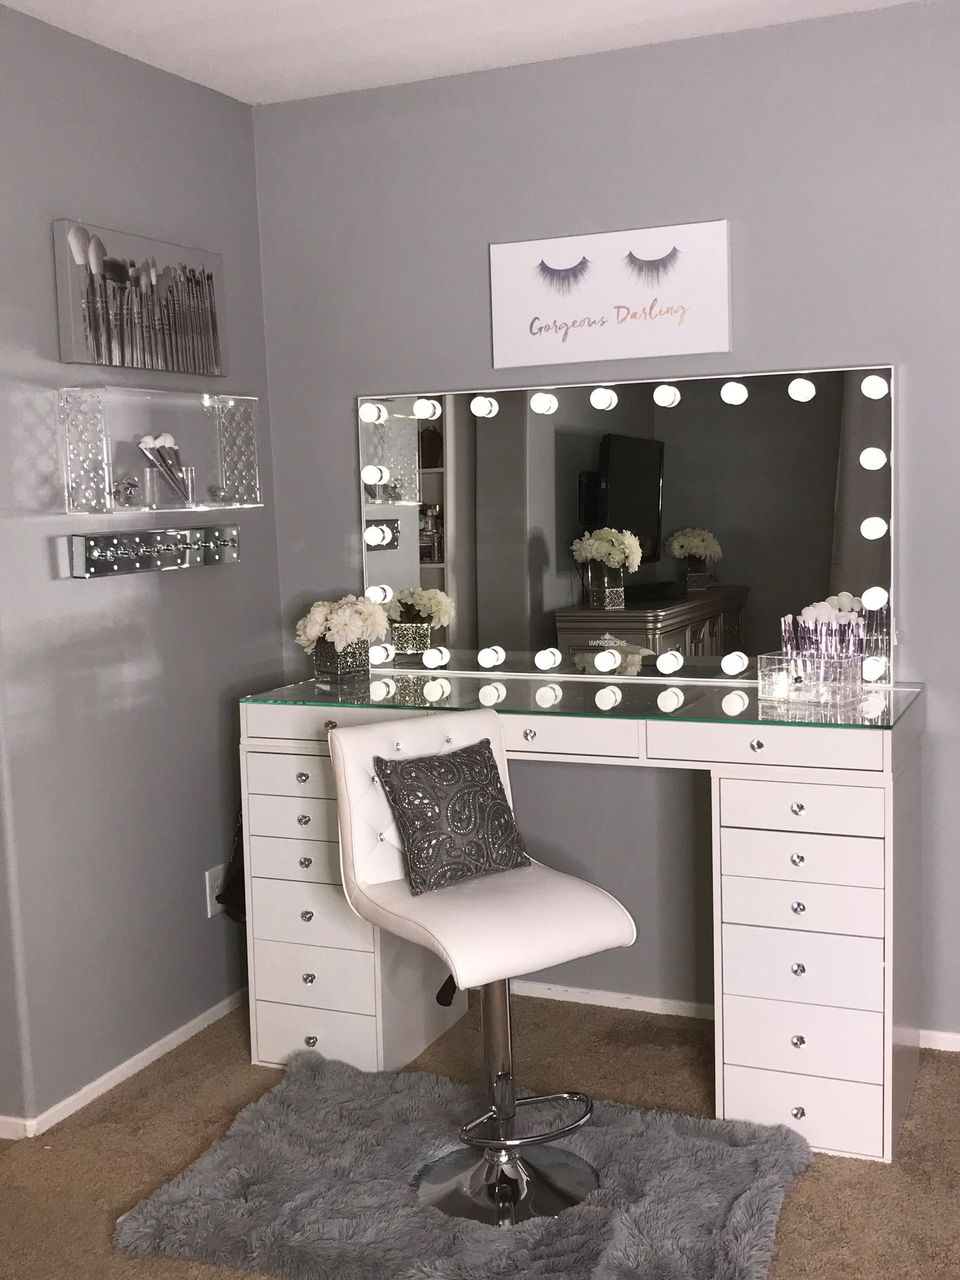 Impressions Vanity On Twitter This Vanity Setup From Mexibelle Is Too Perfect Vanityinspo Repost Vanitygoals Featured Impressionsvanity Hollywood Glow Panorama Extra Wide Vanity Mirror Slaystationpro 2 0 With Drawer Units